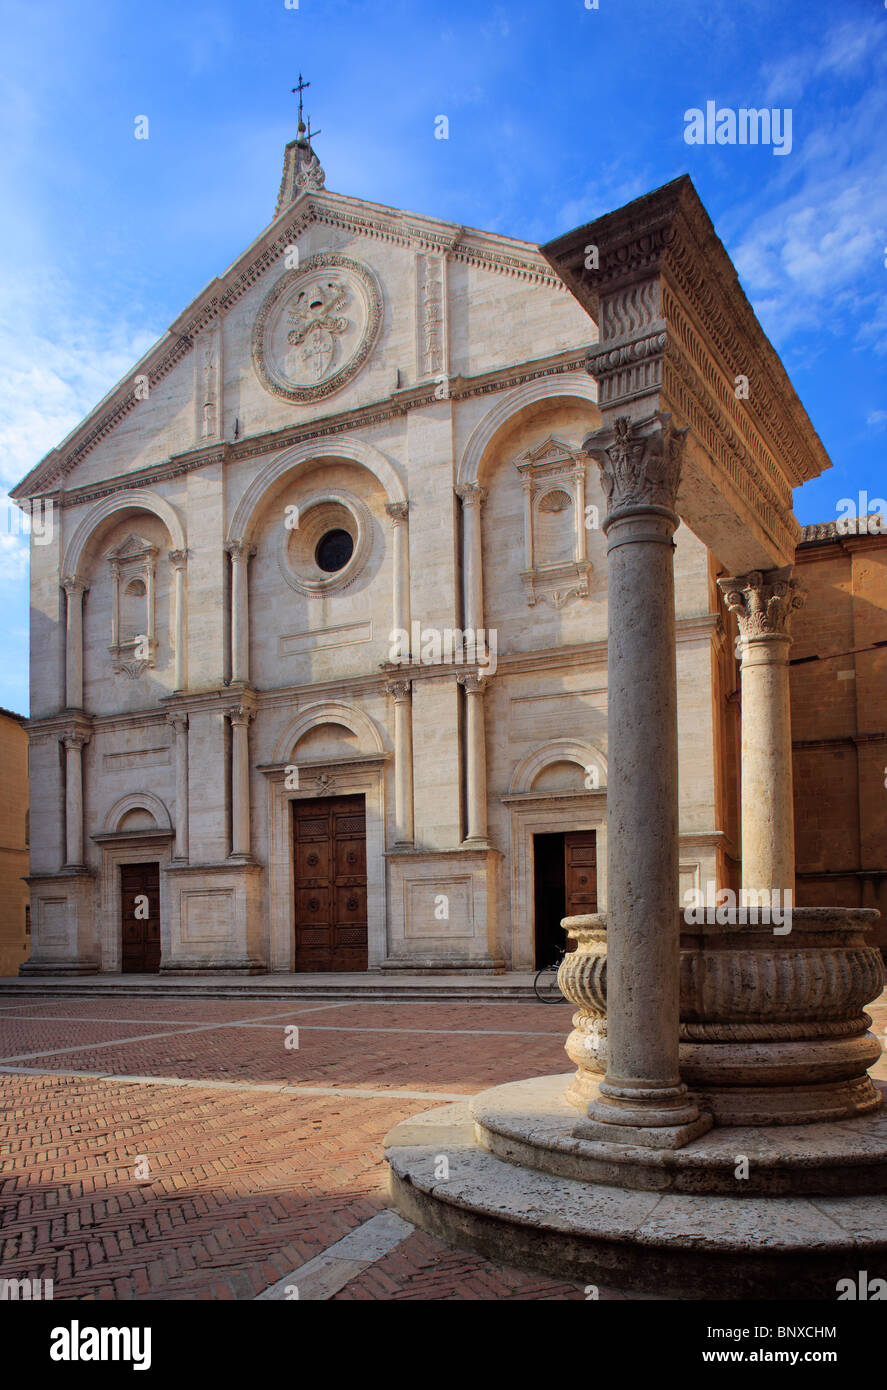 Duomo and well on piazza in Pienza, Tuscany - Stock Image